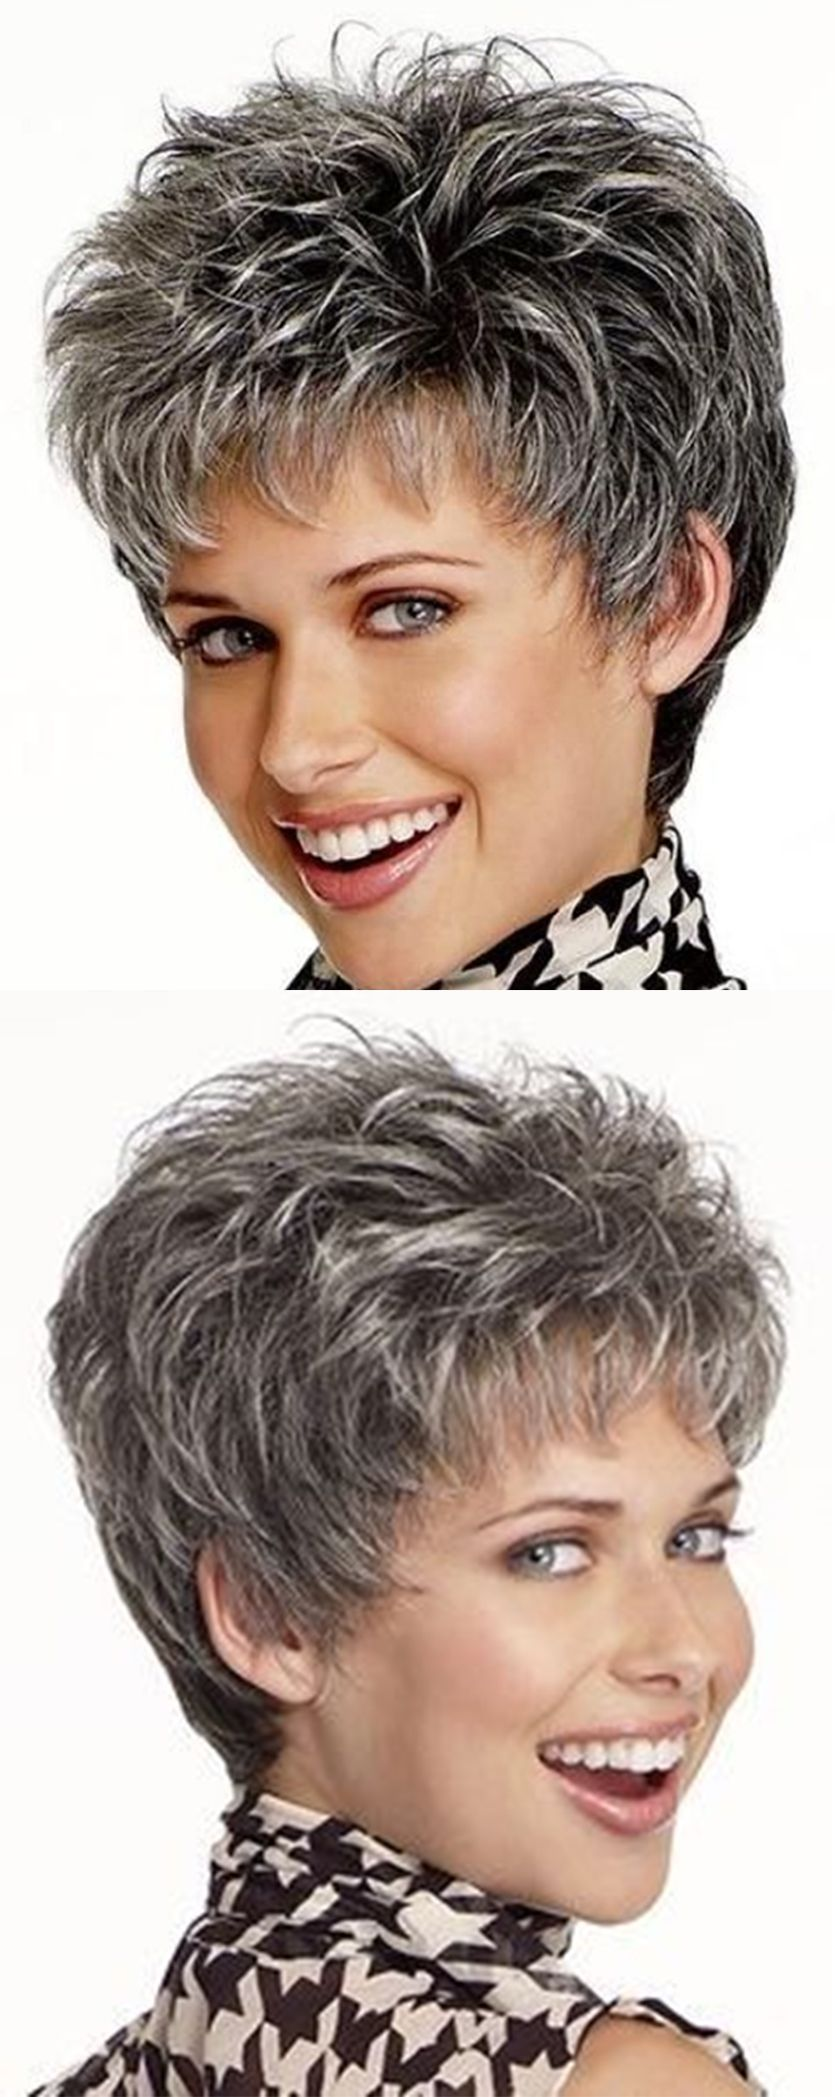 printable short hairstyles for women over 50 timeless short hairstyles for women over 50 cute